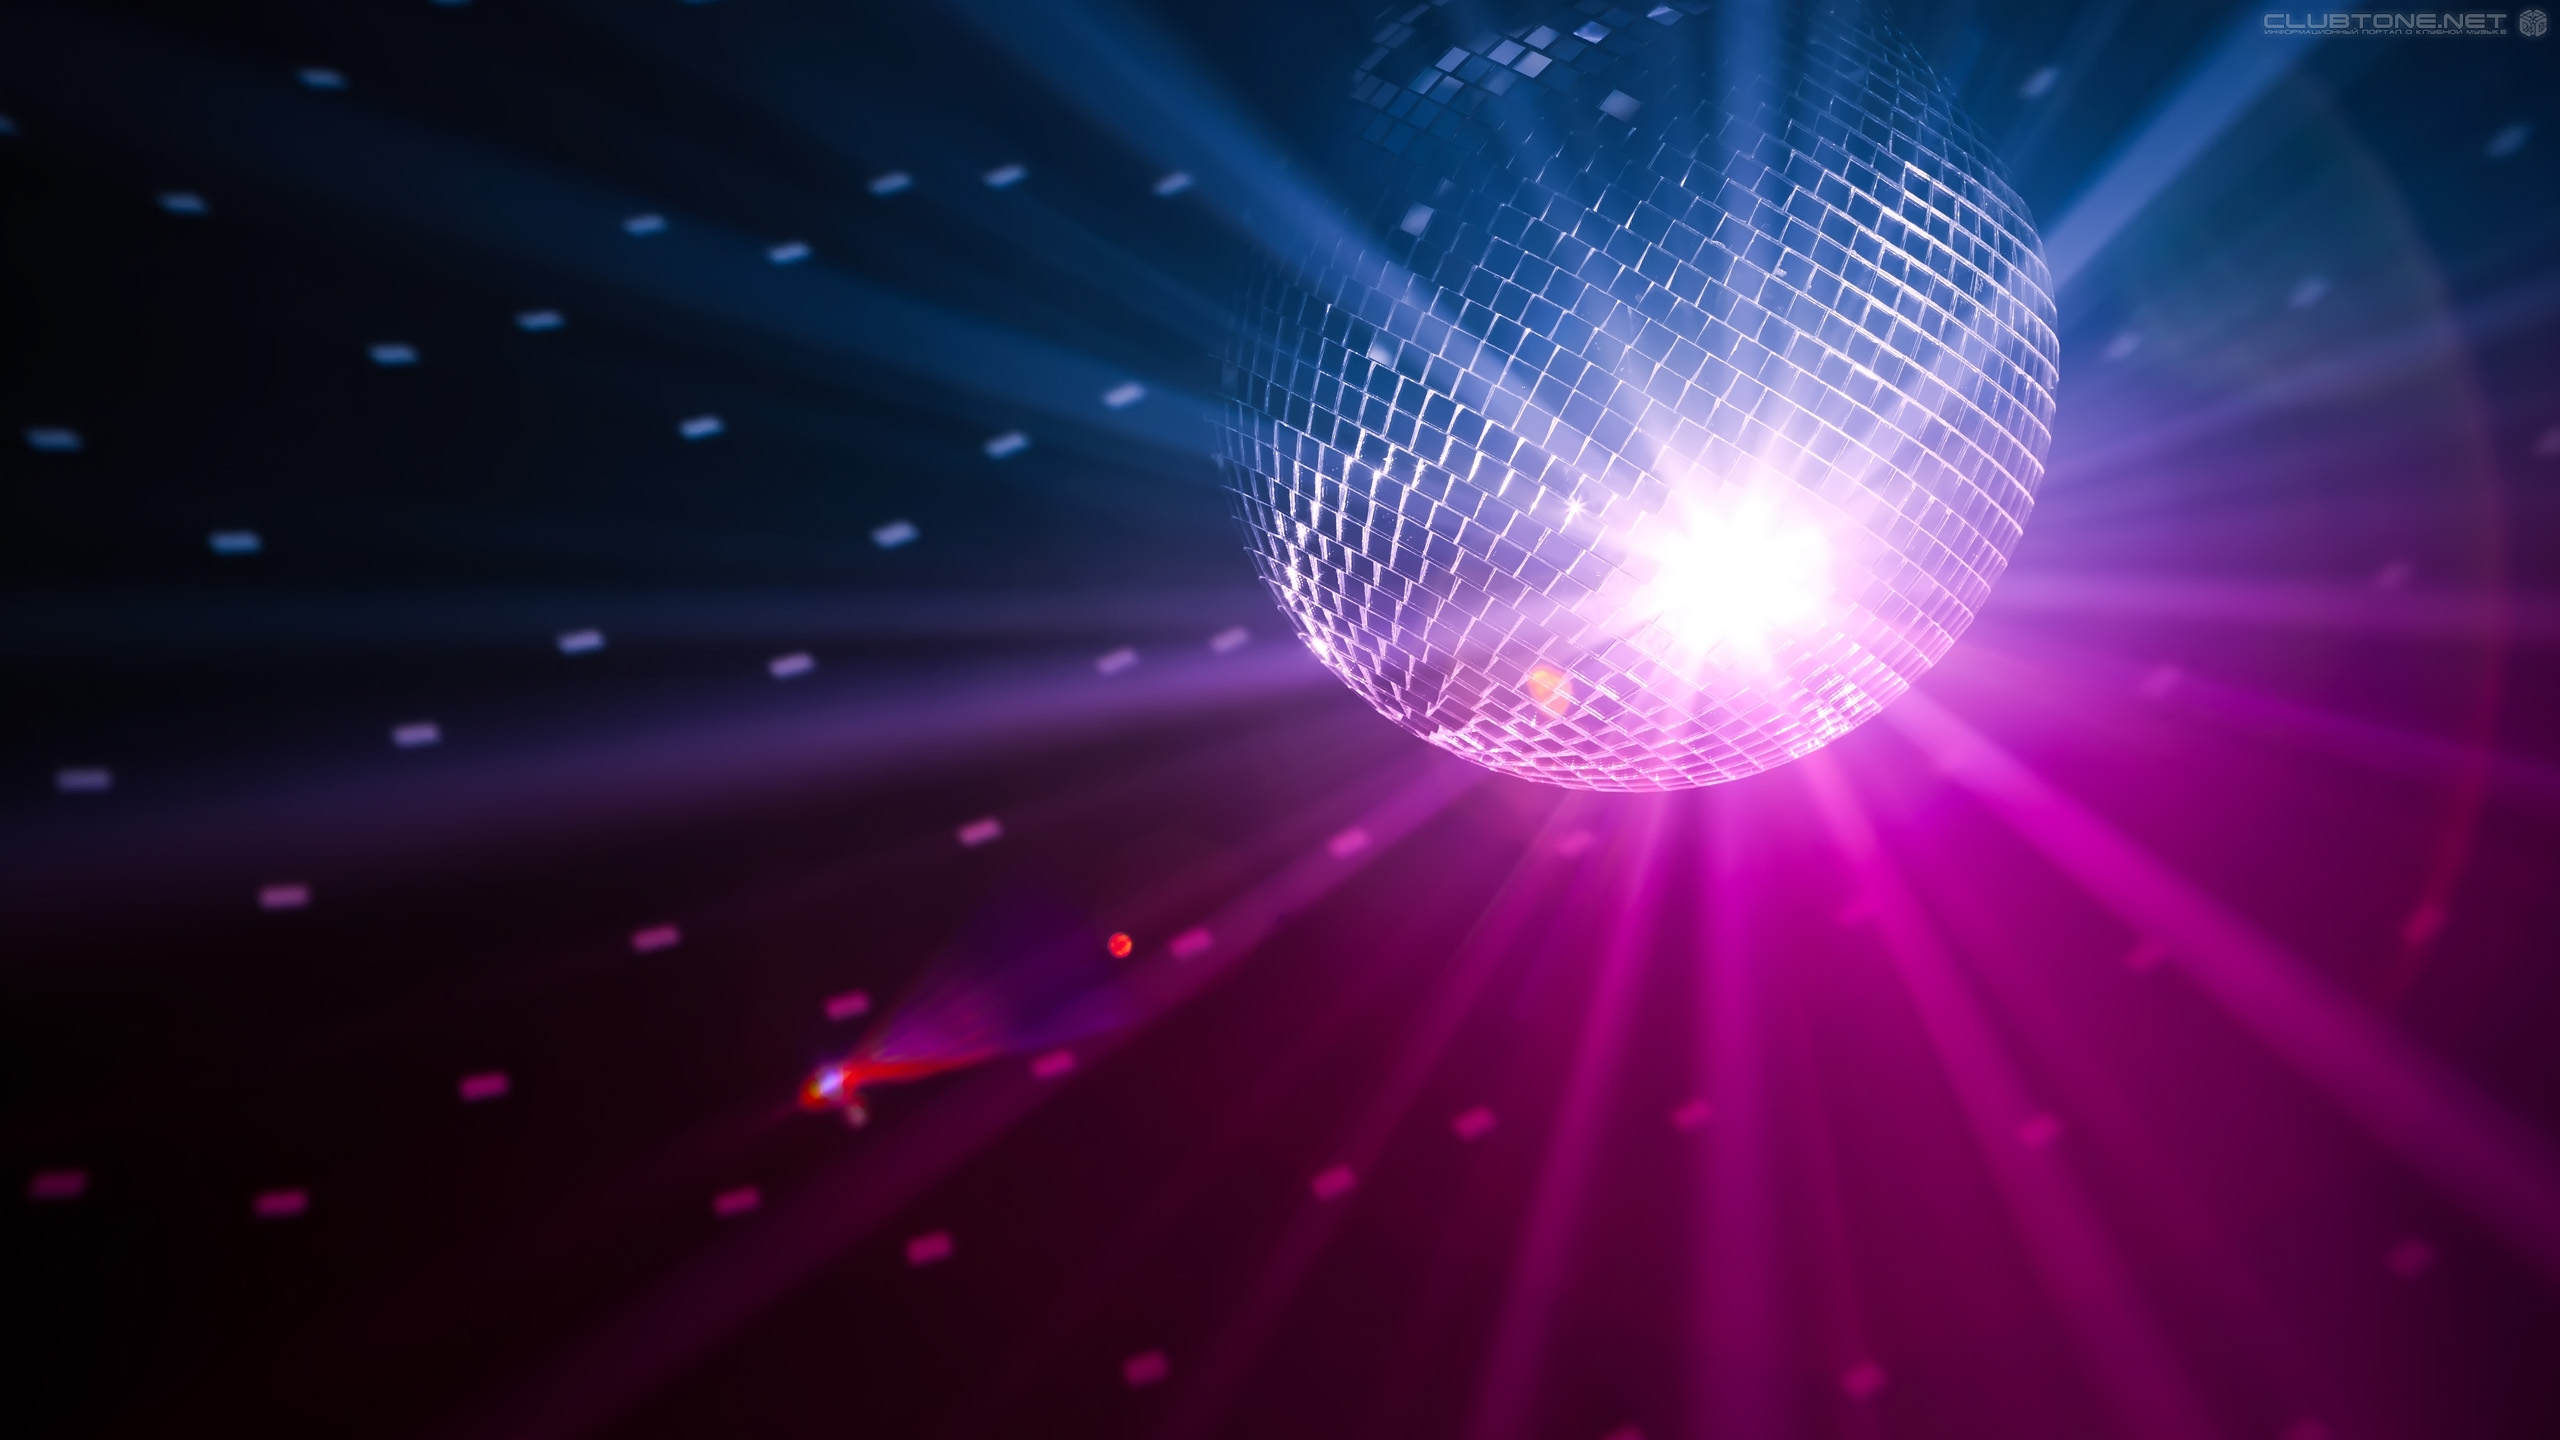 disco hd wallpapers - photo #15